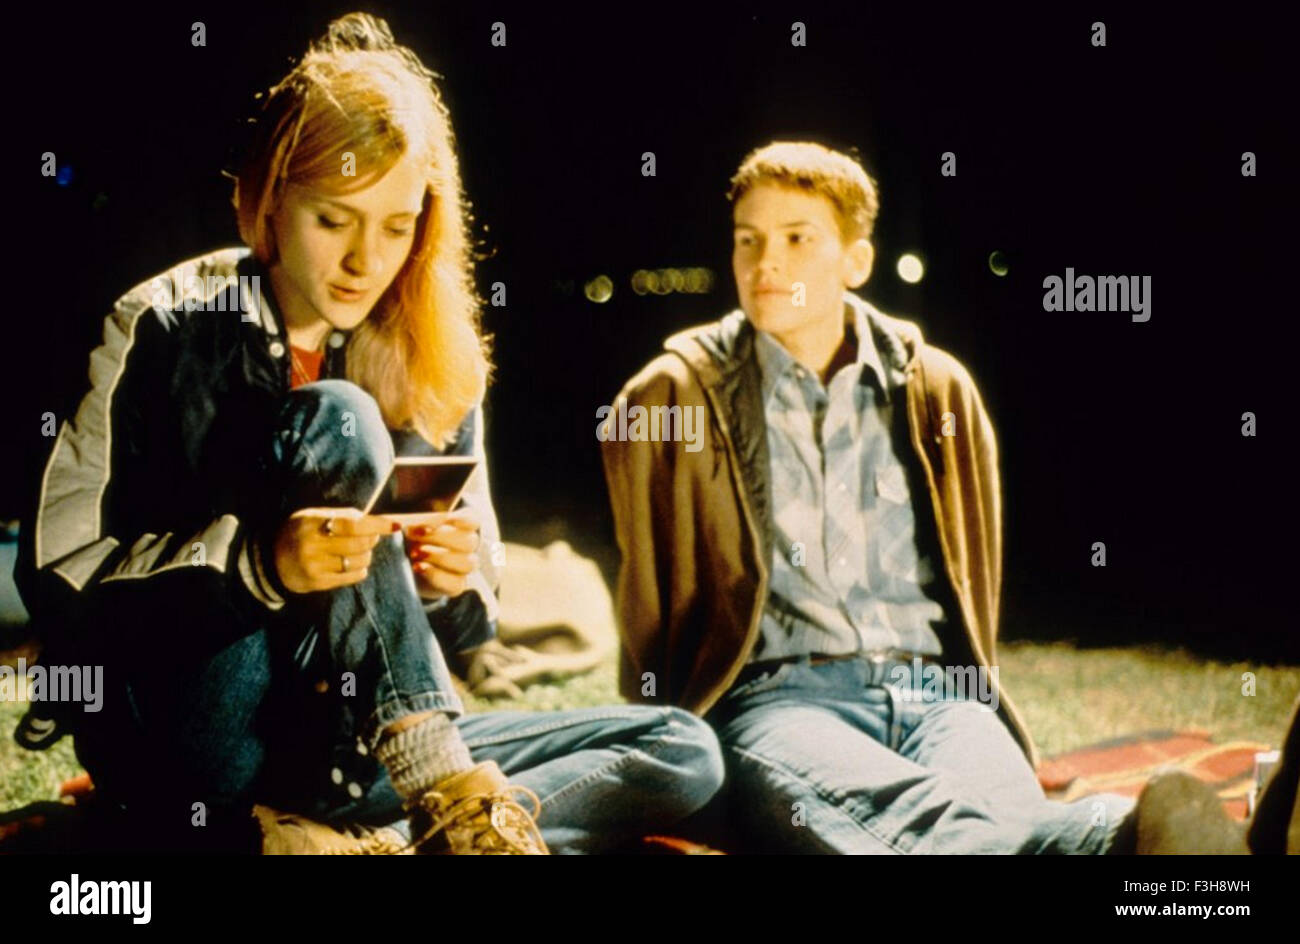 BOYS DON'T CRY 1999 Fox Searchlight Pictures film with Chloe Sevigny at left and Hilary Swank - Stock Image